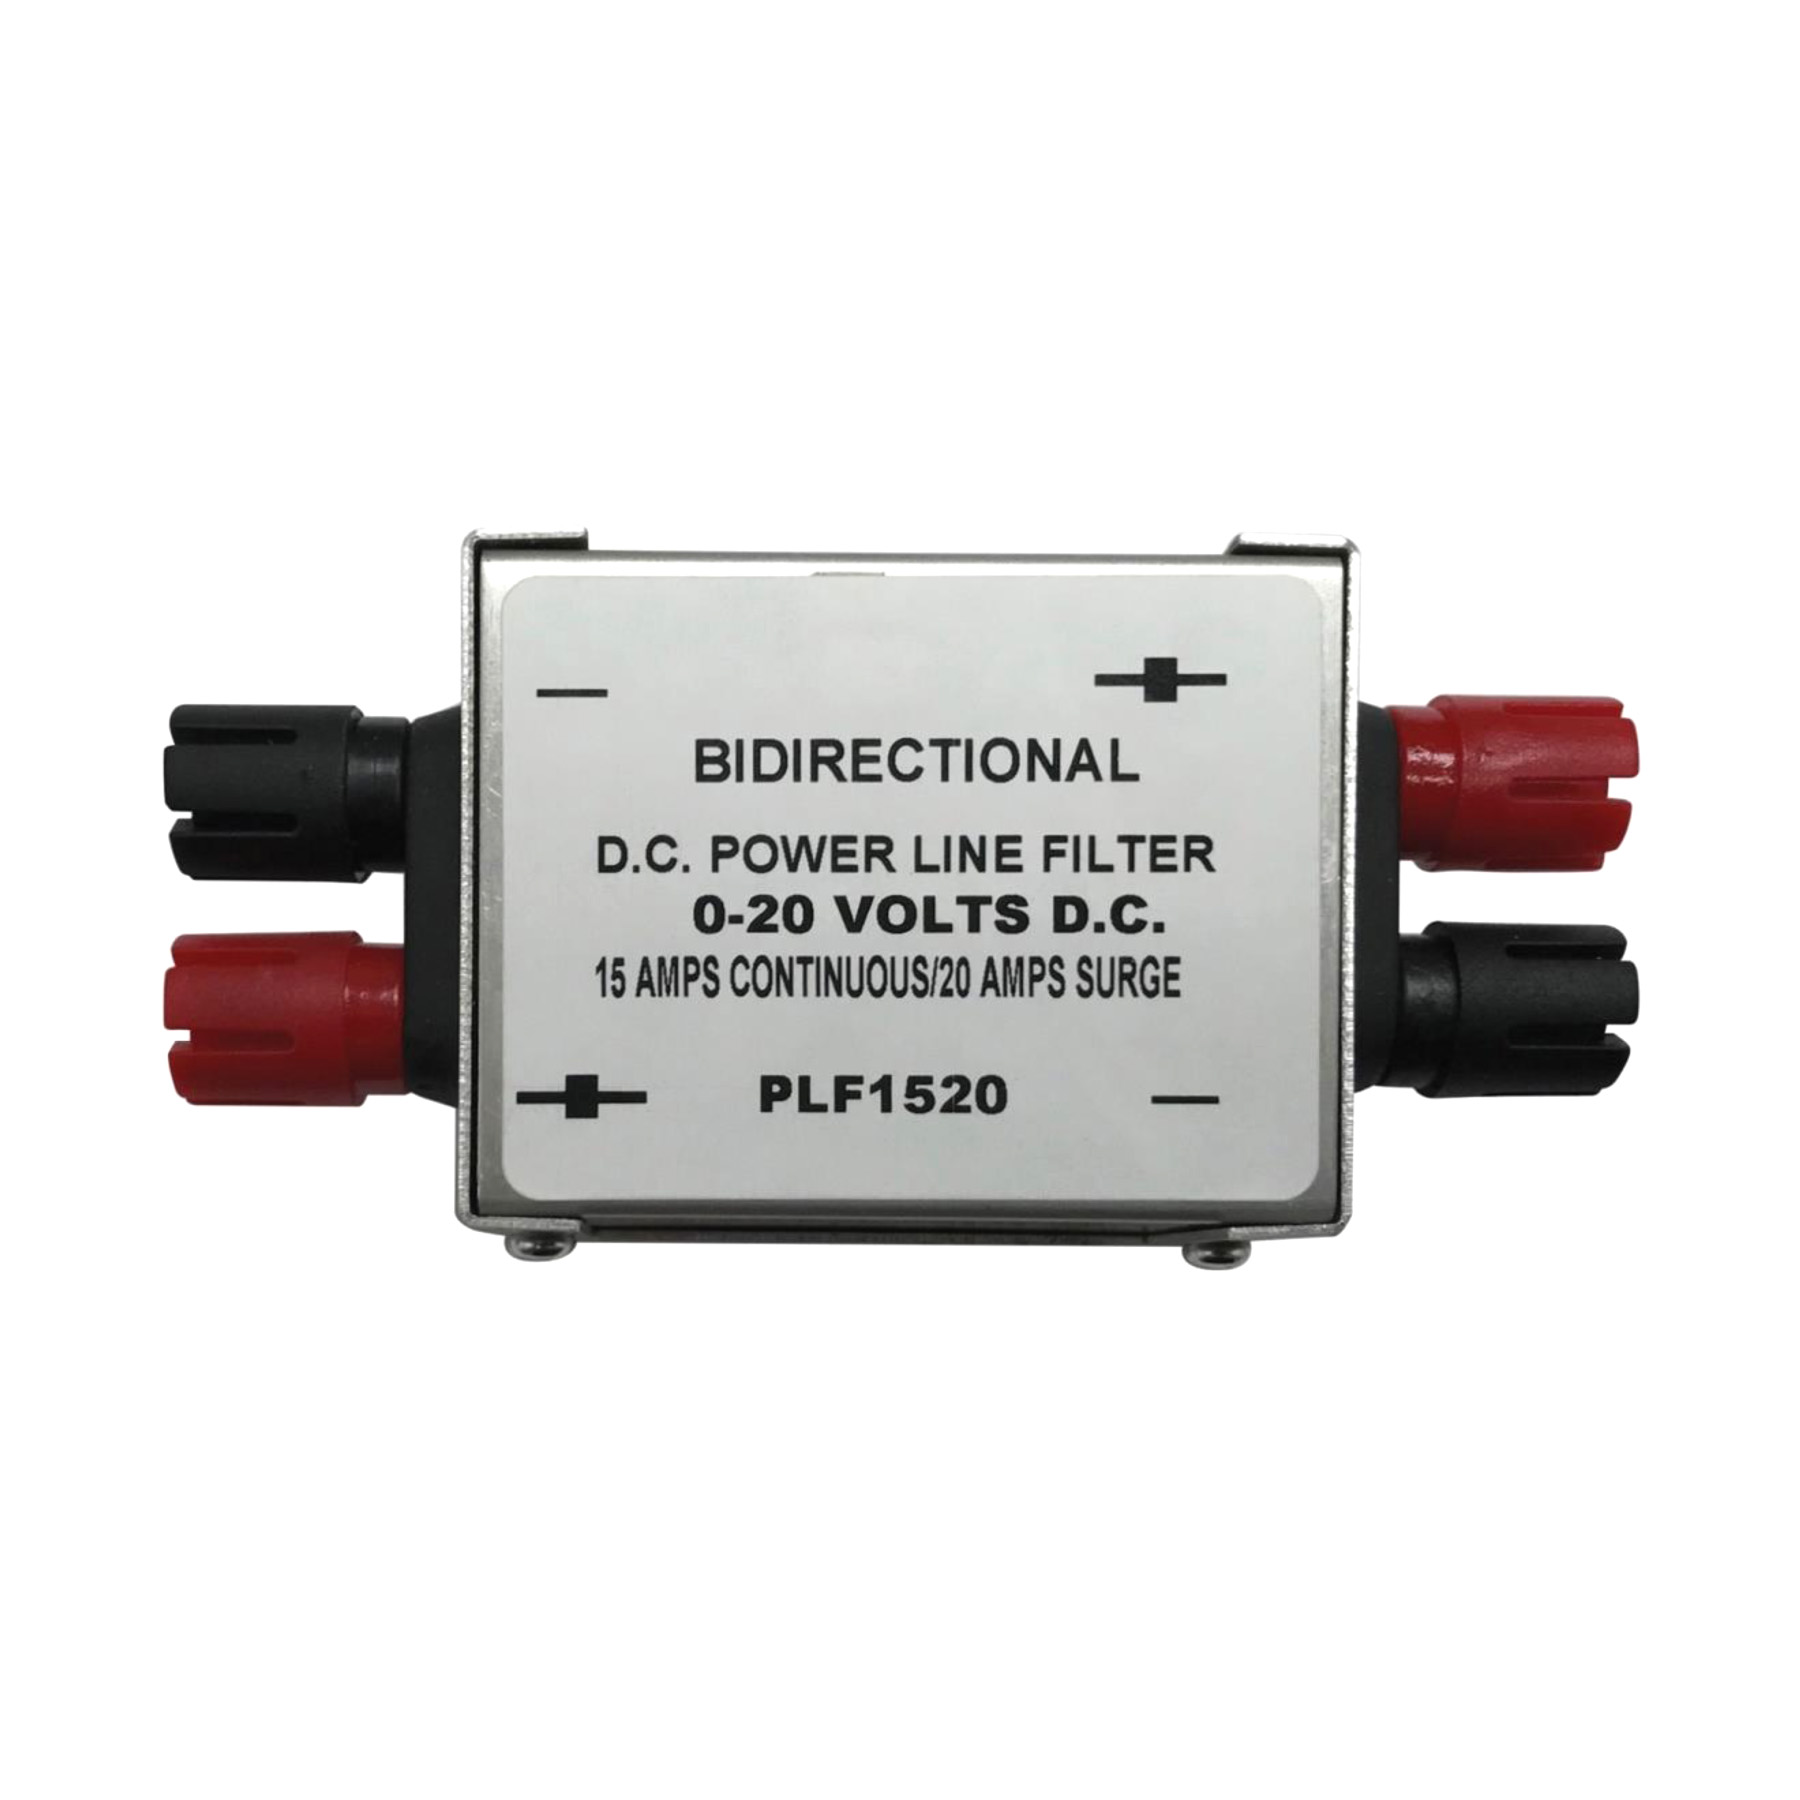 PROCOMM - UNIVERSAL IN-LINE 15 AMP DC POWER NOISE FILTER - FILTERS OUT UN-WANTED LINE NOISE & ELECTRICAL INTERFERENCE